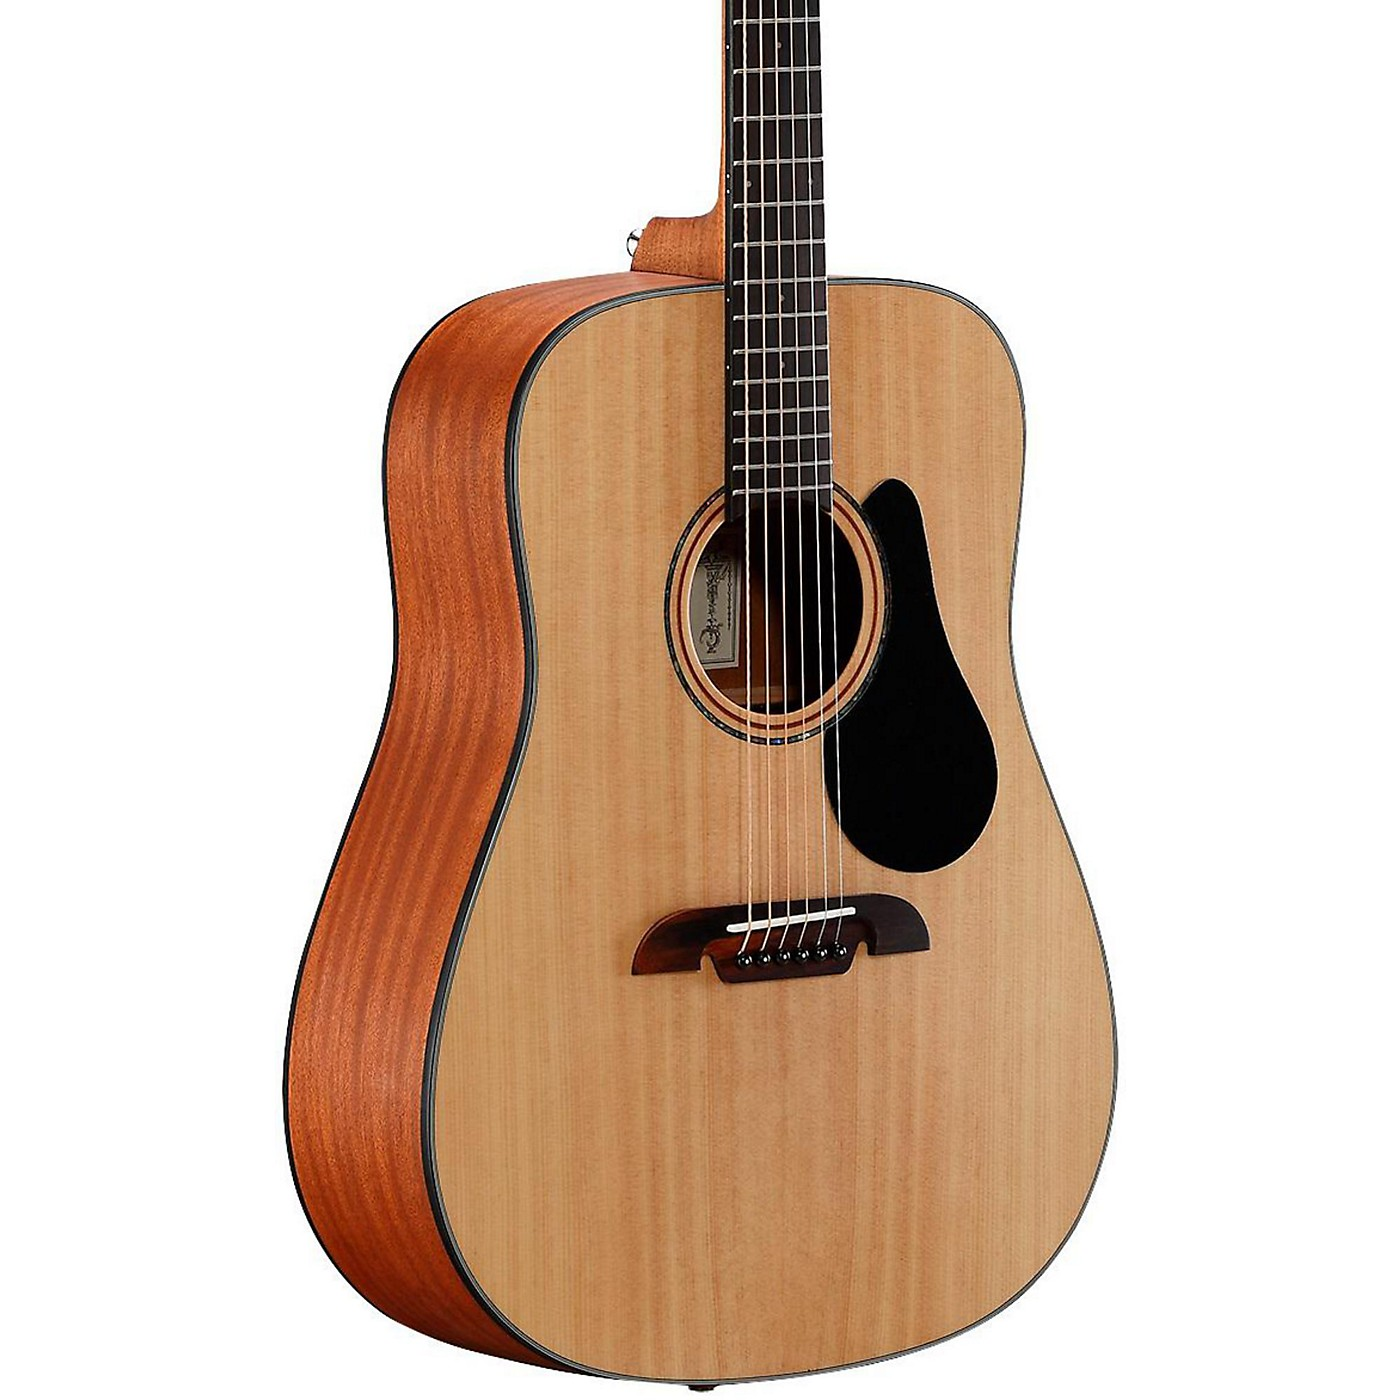 Alvarez Artist Series AD30 Dreadnought Acoustic Guitar thumbnail